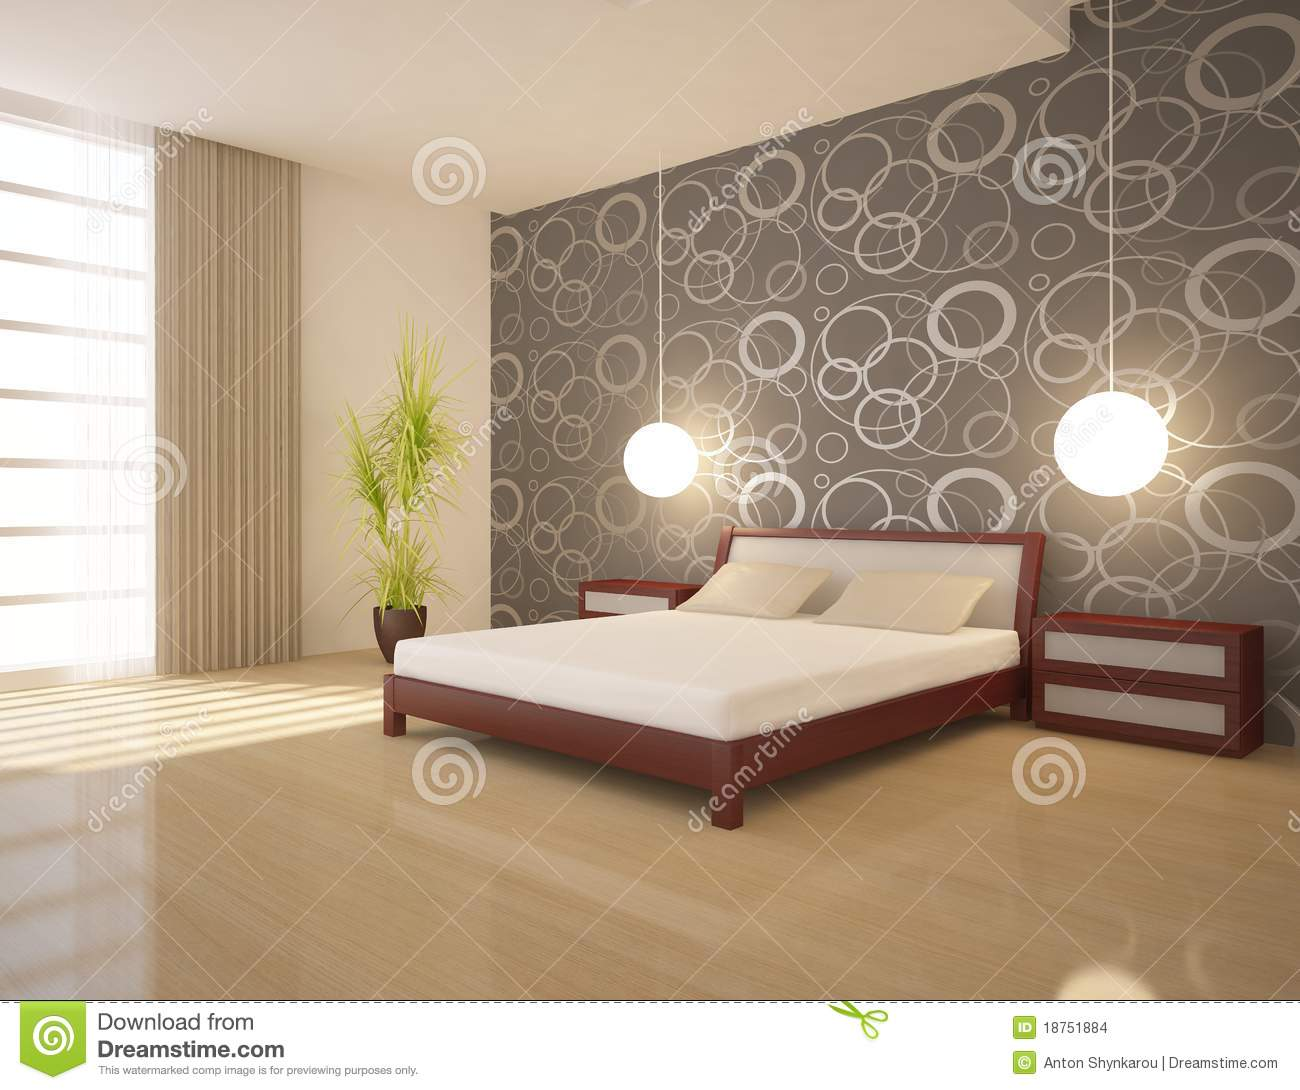 Chambre coucher blanche images stock image 18751884 for Chambre a coucher blanche